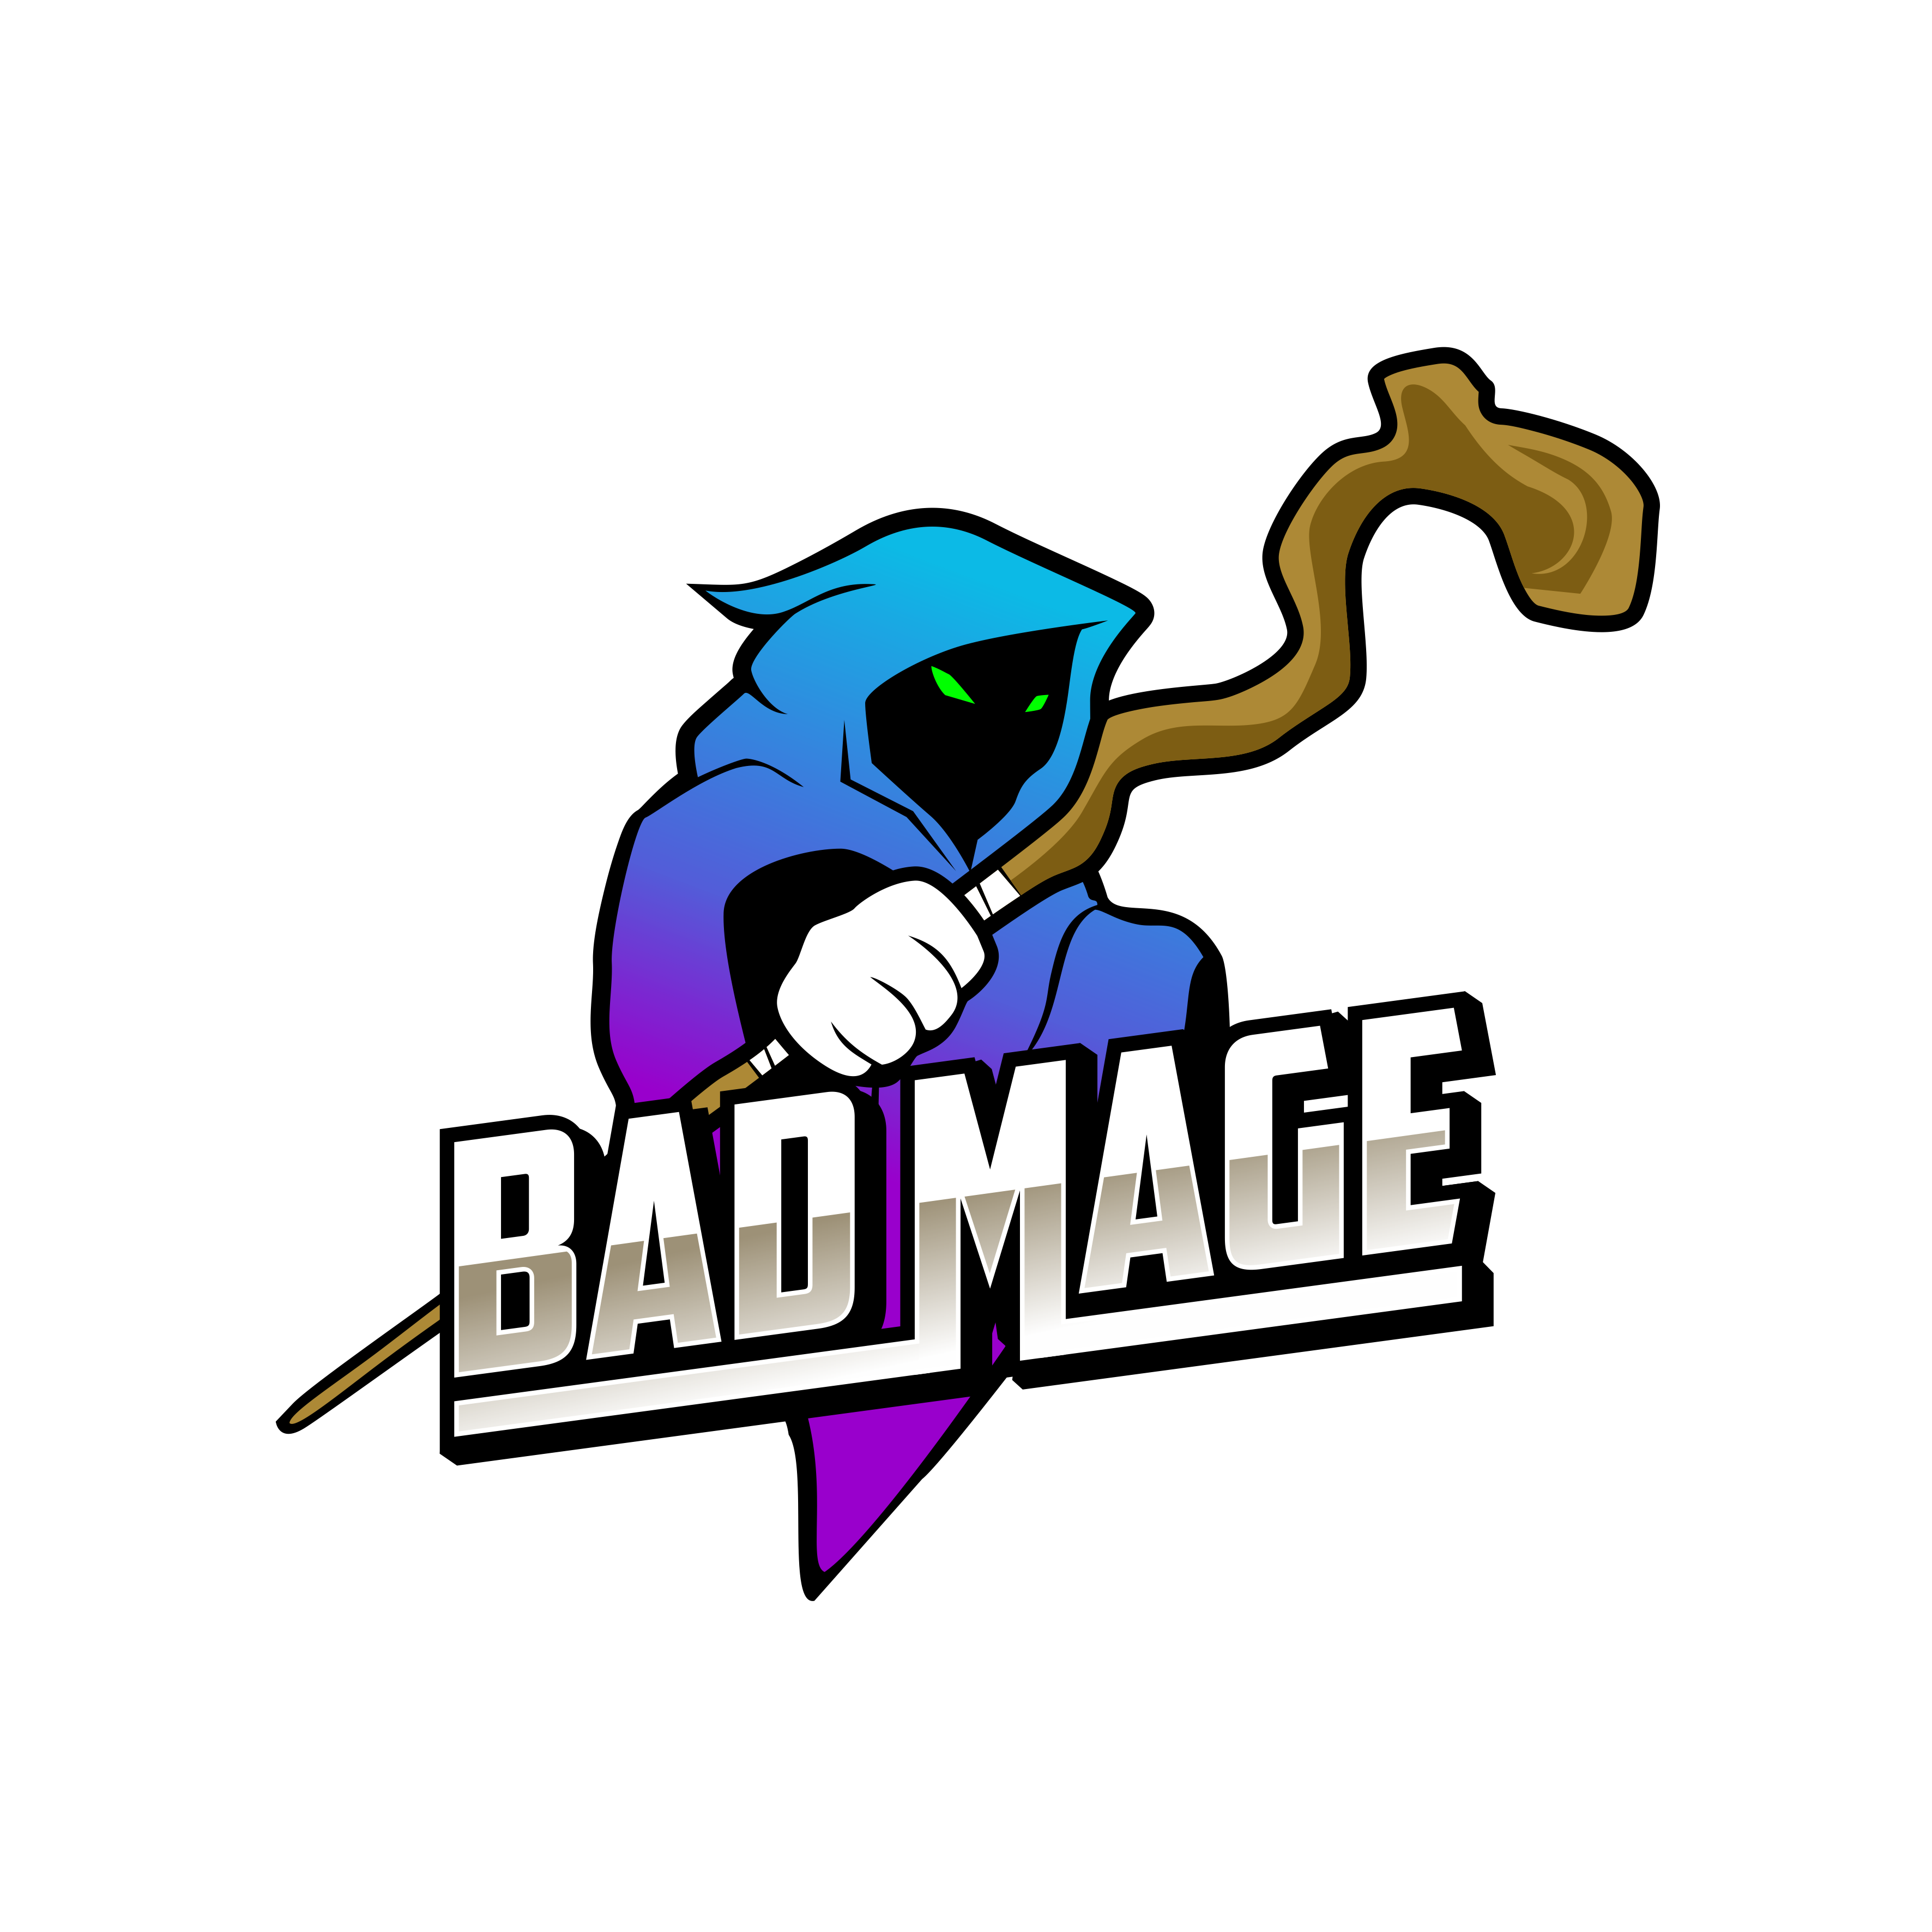 Create a simple / cute Mage centric logo for Bad Mage